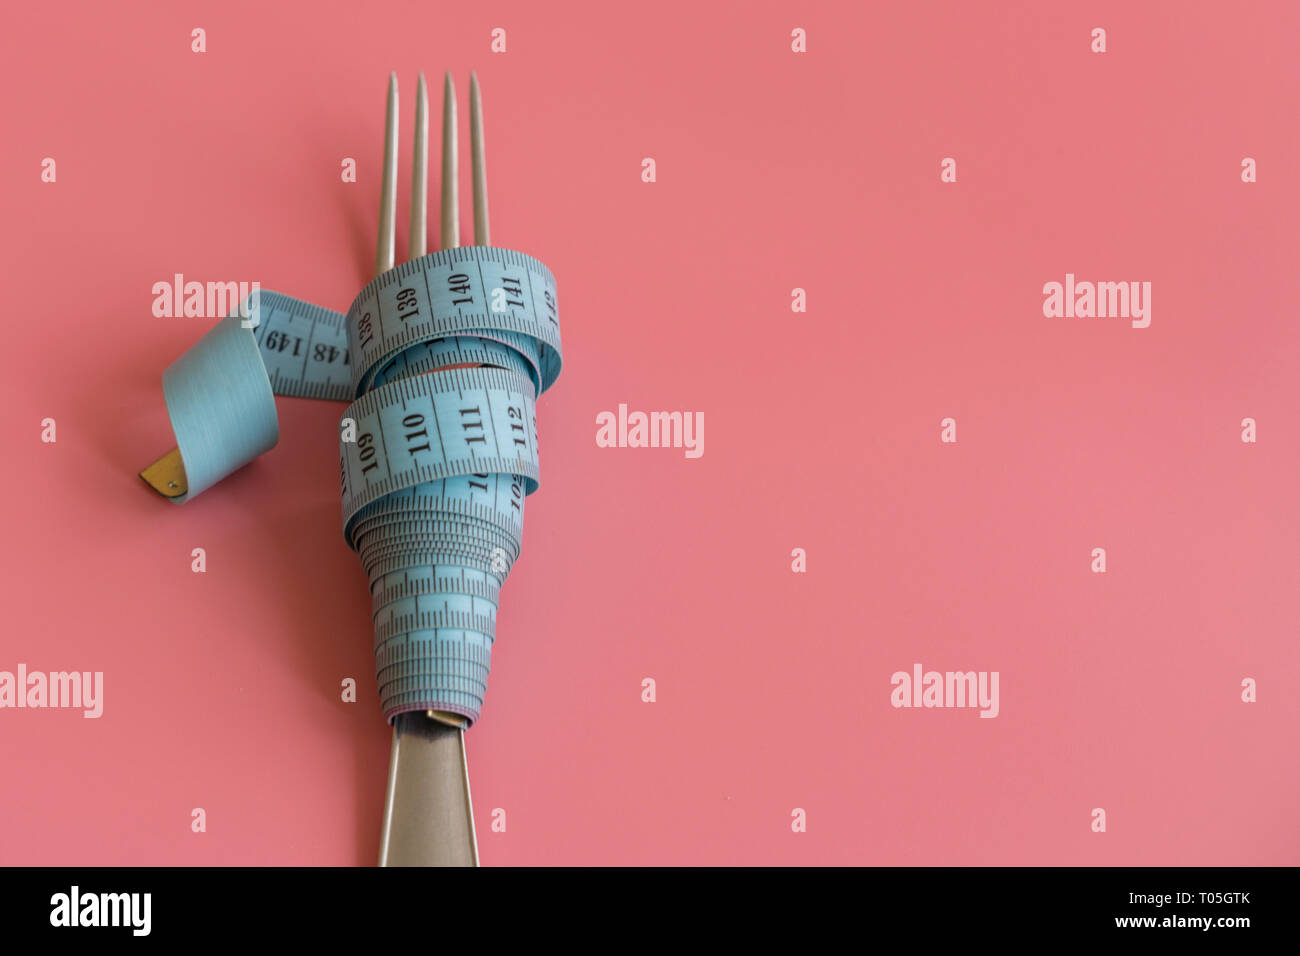 Fork Wrapped In Tape Measure On Pink Background Proper Nutrition Medical Starvation Diet For Weight Loss Concept Free Space For Text Stock Photo 241068147 Alamy